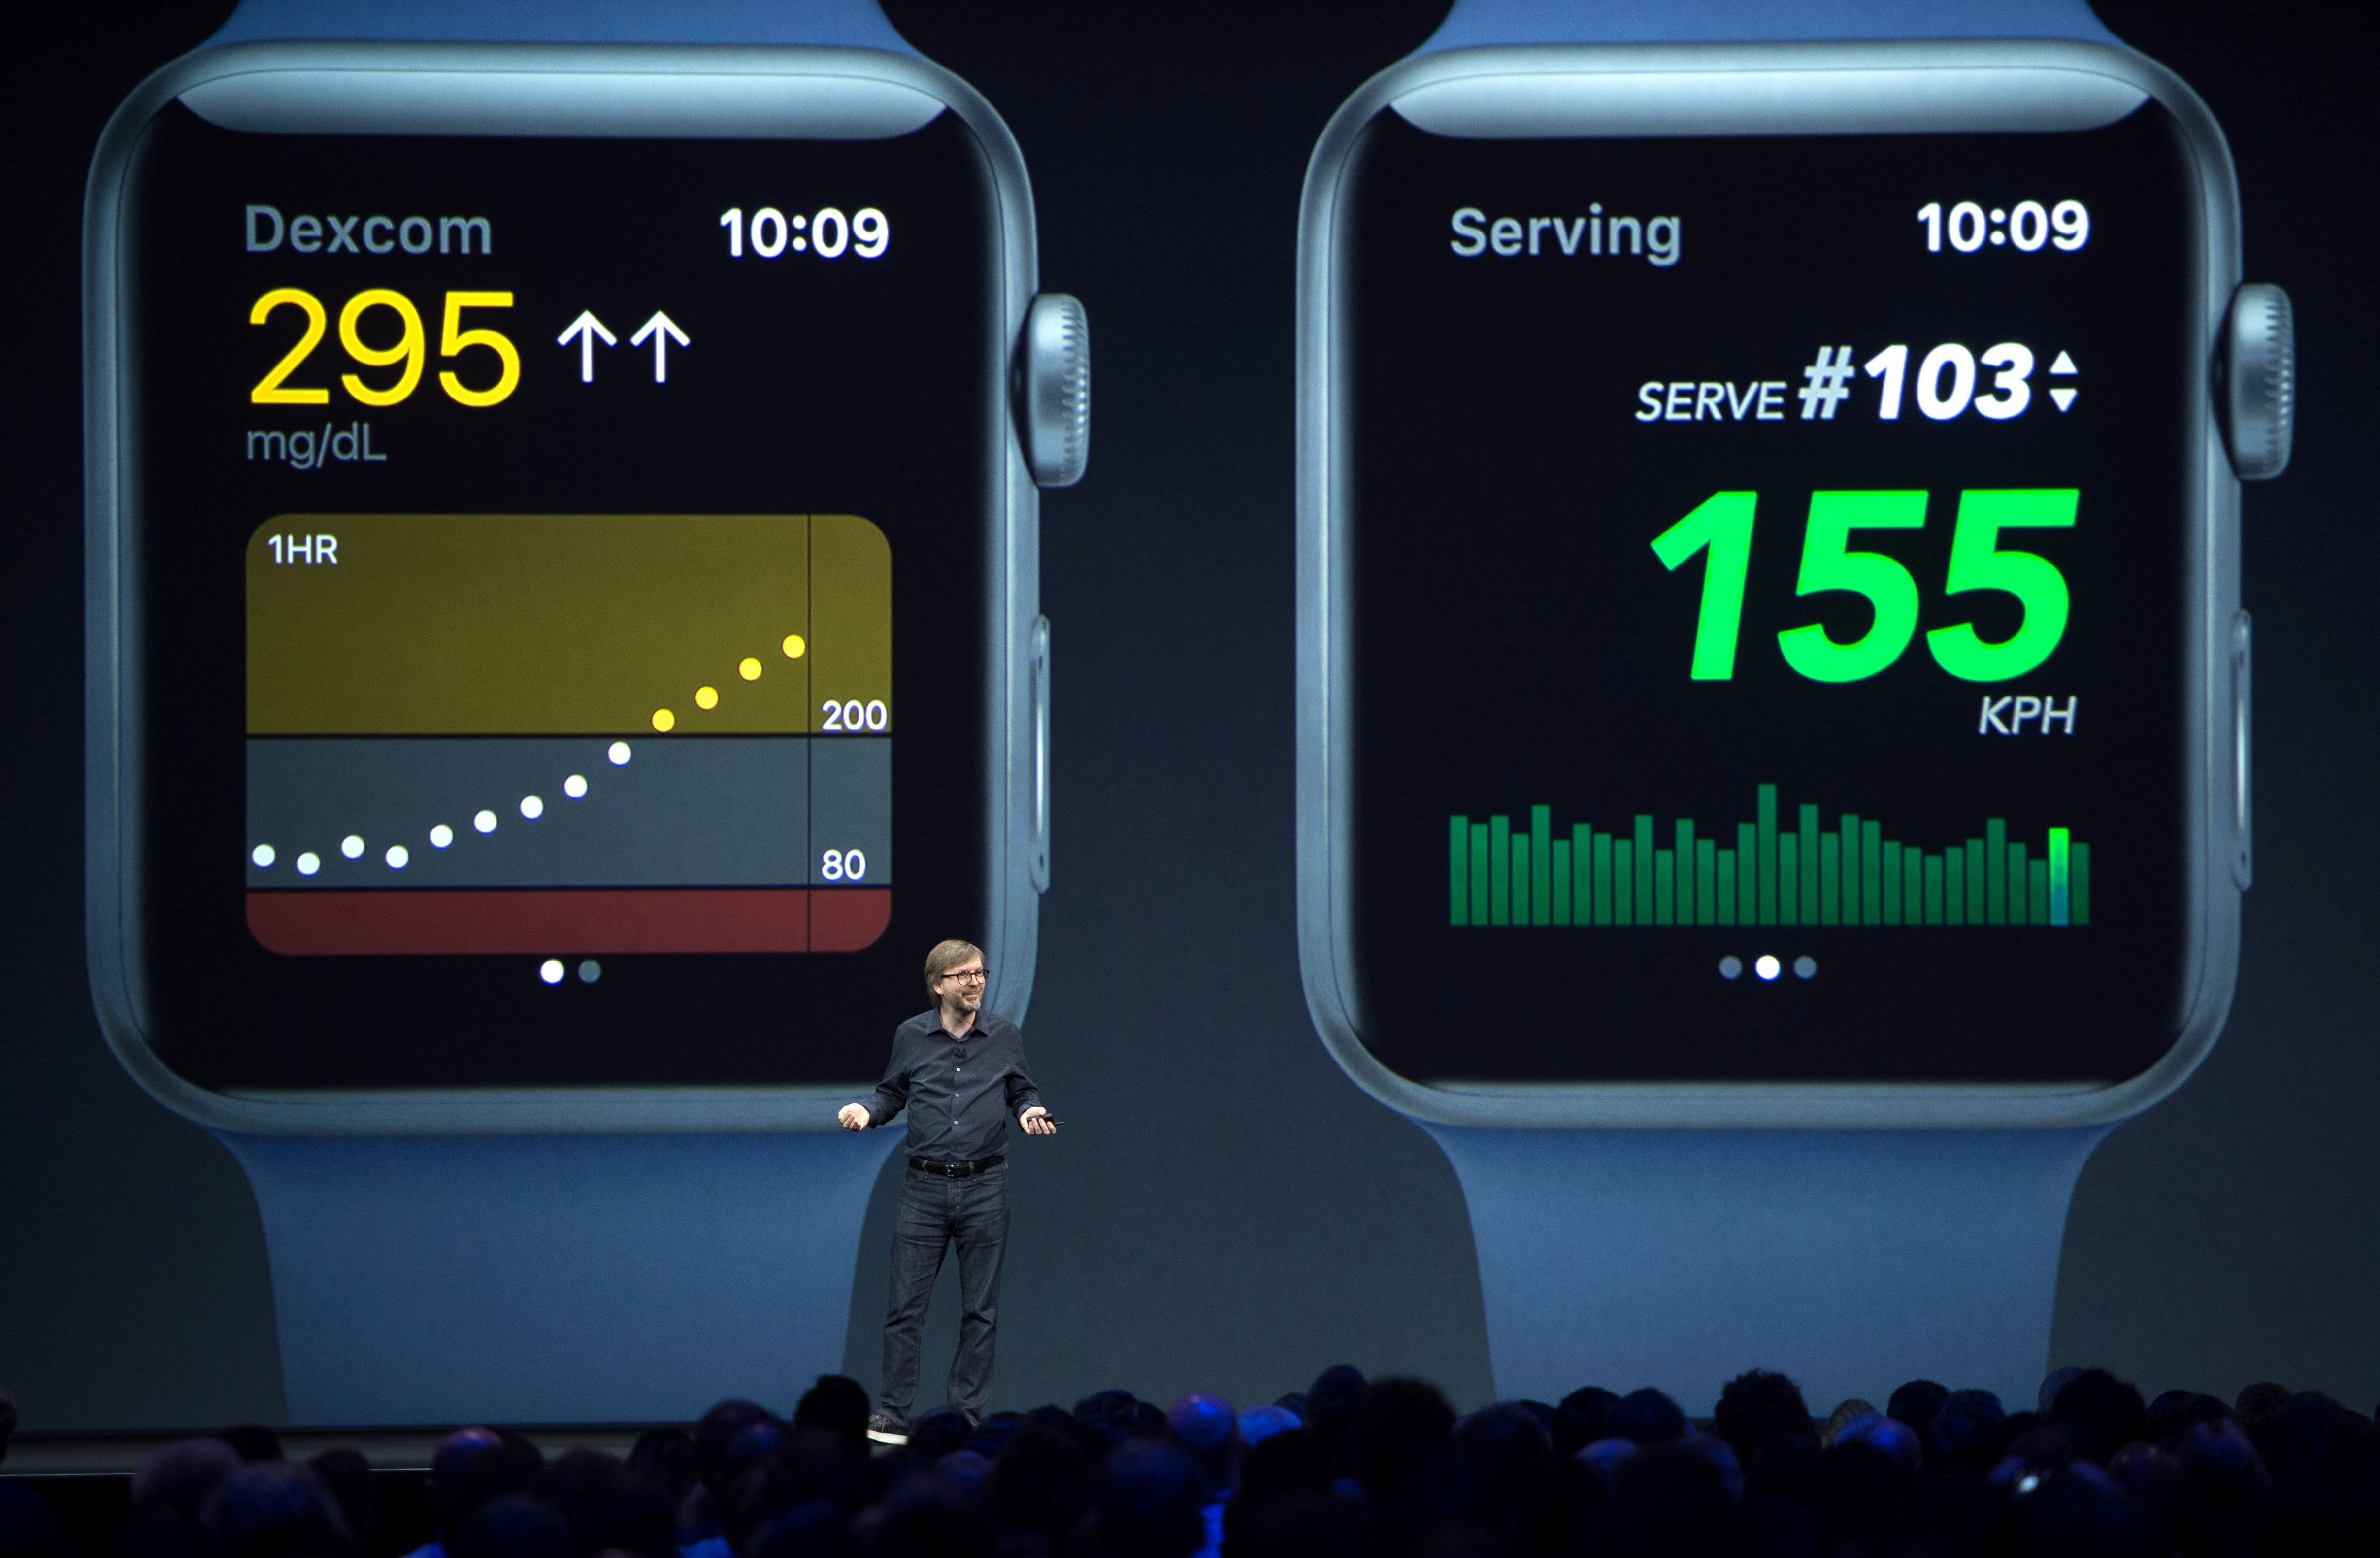 Kevin Lynch, Vice President of Technology for Apple speaks about the Apple Watch on stage during Apple's World Wide Developers Conference in San Jose, California on June 05, 2017. (JOSH EDELSON/AFP/Getty Images)